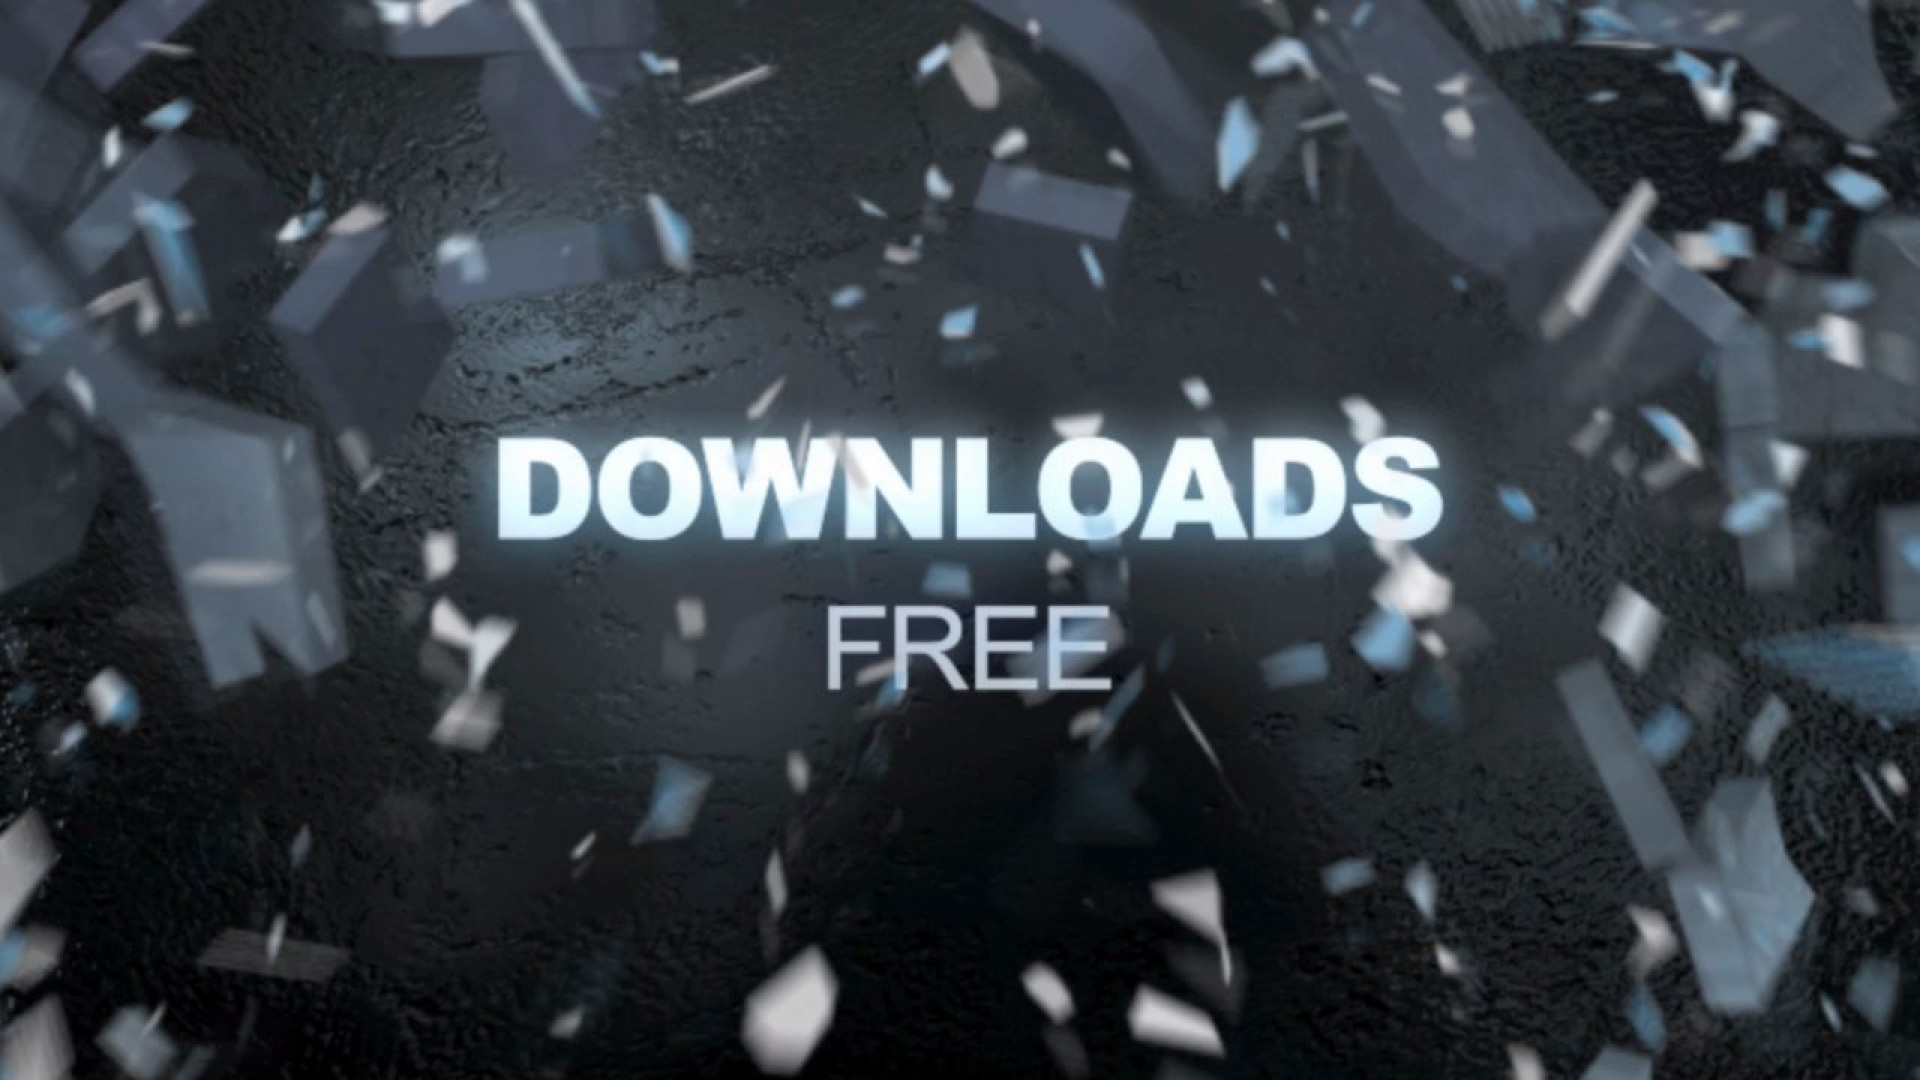 006 Unusual Free Adobe After Effect Template Download Highest Quality  Project Cs6 Wedding1920